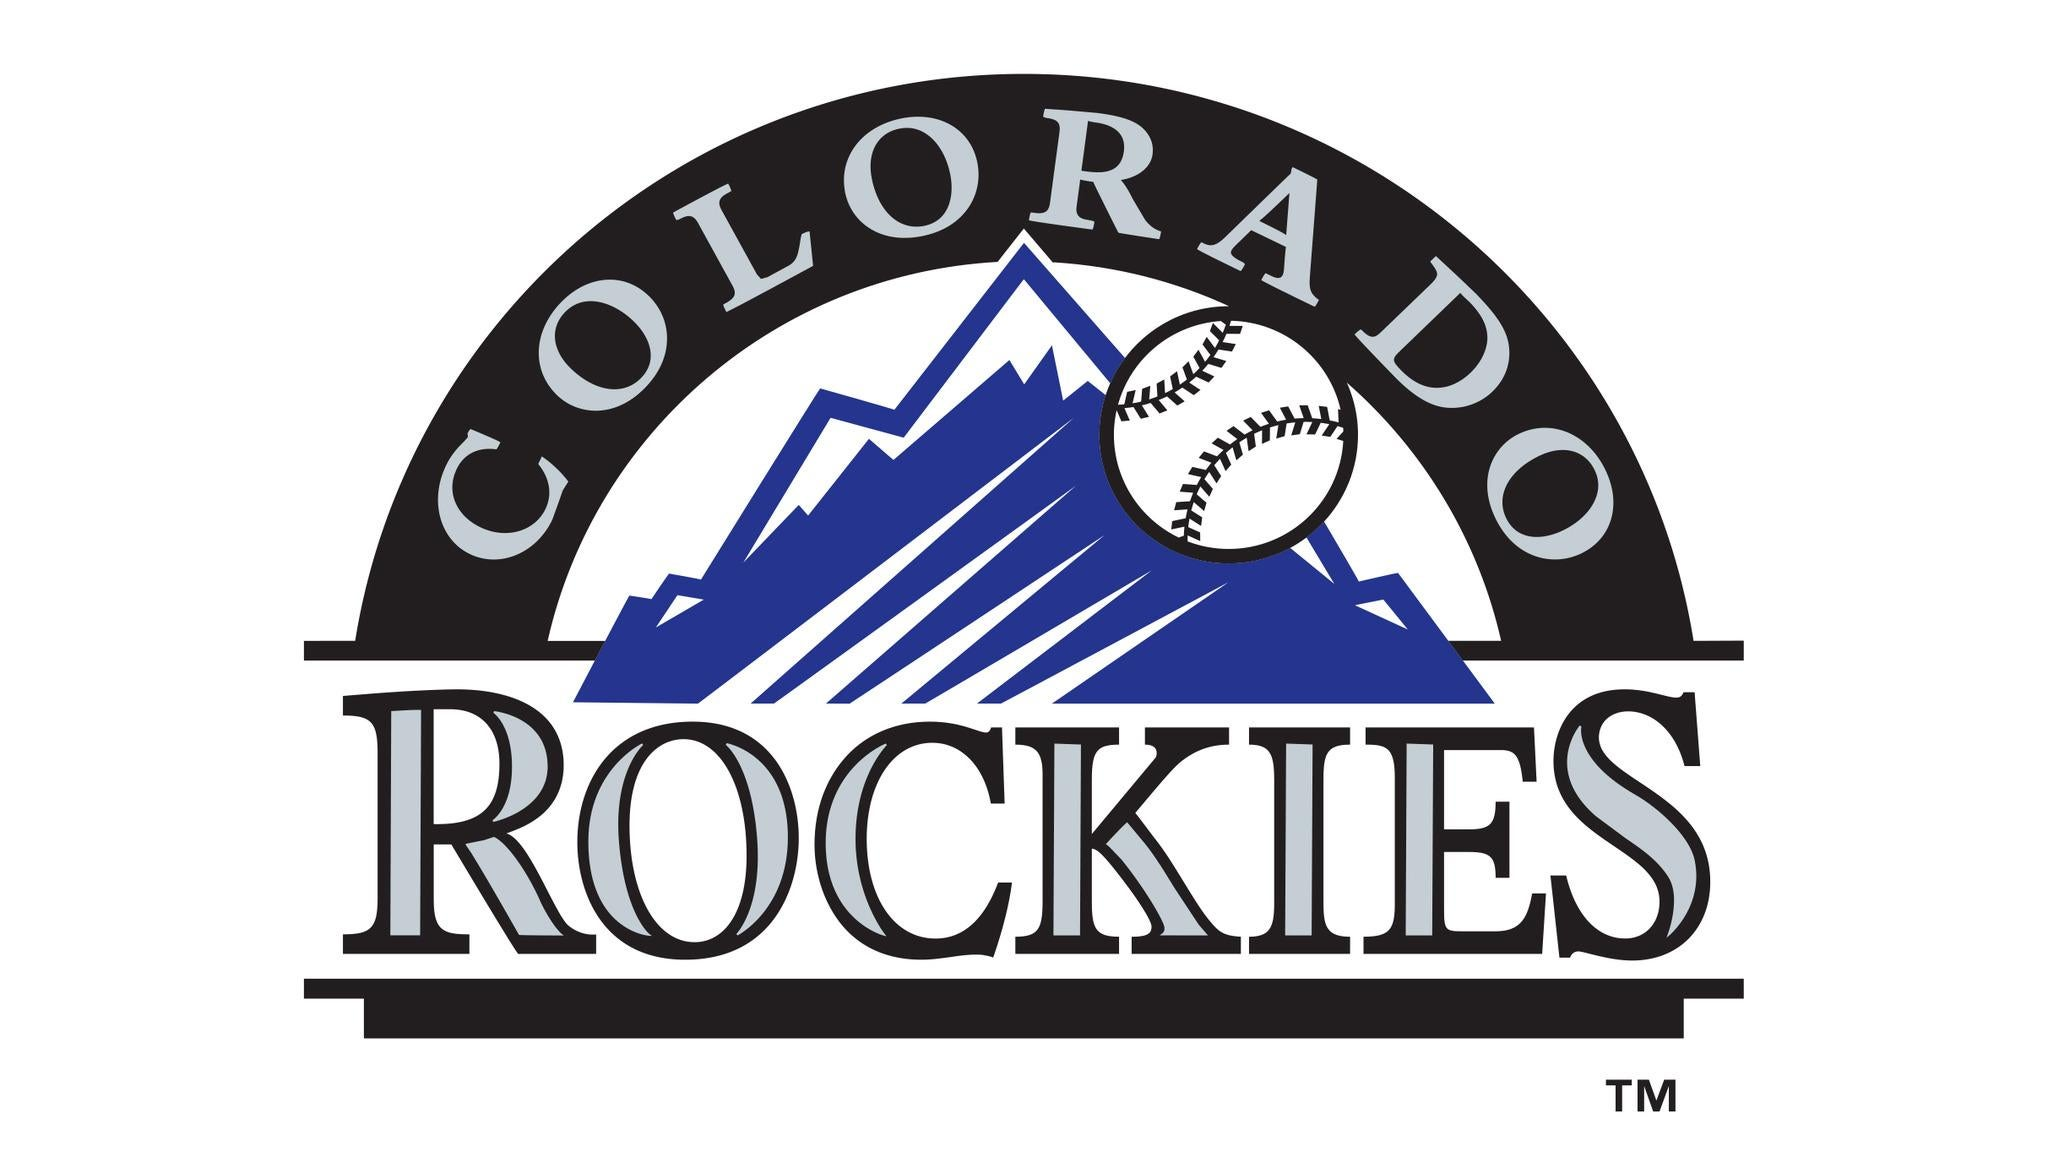 Colorado Rockies vs. Cincinnati Reds at Coors Field - Denver, CO 80205